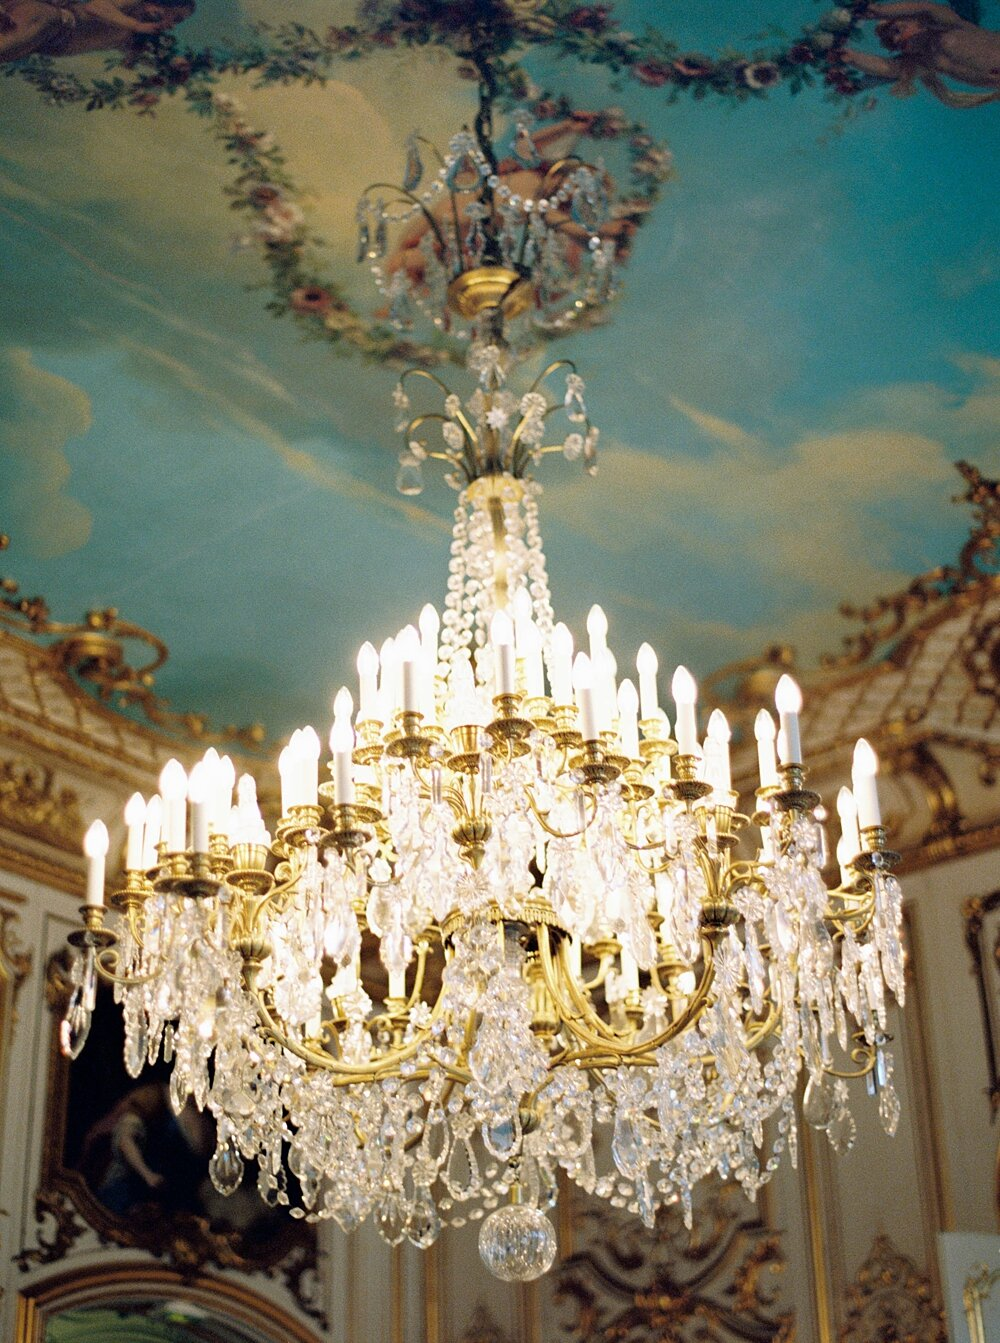 Chandelier against ceiling painted blue with adornments at Hotel Le Marois in Paris, France